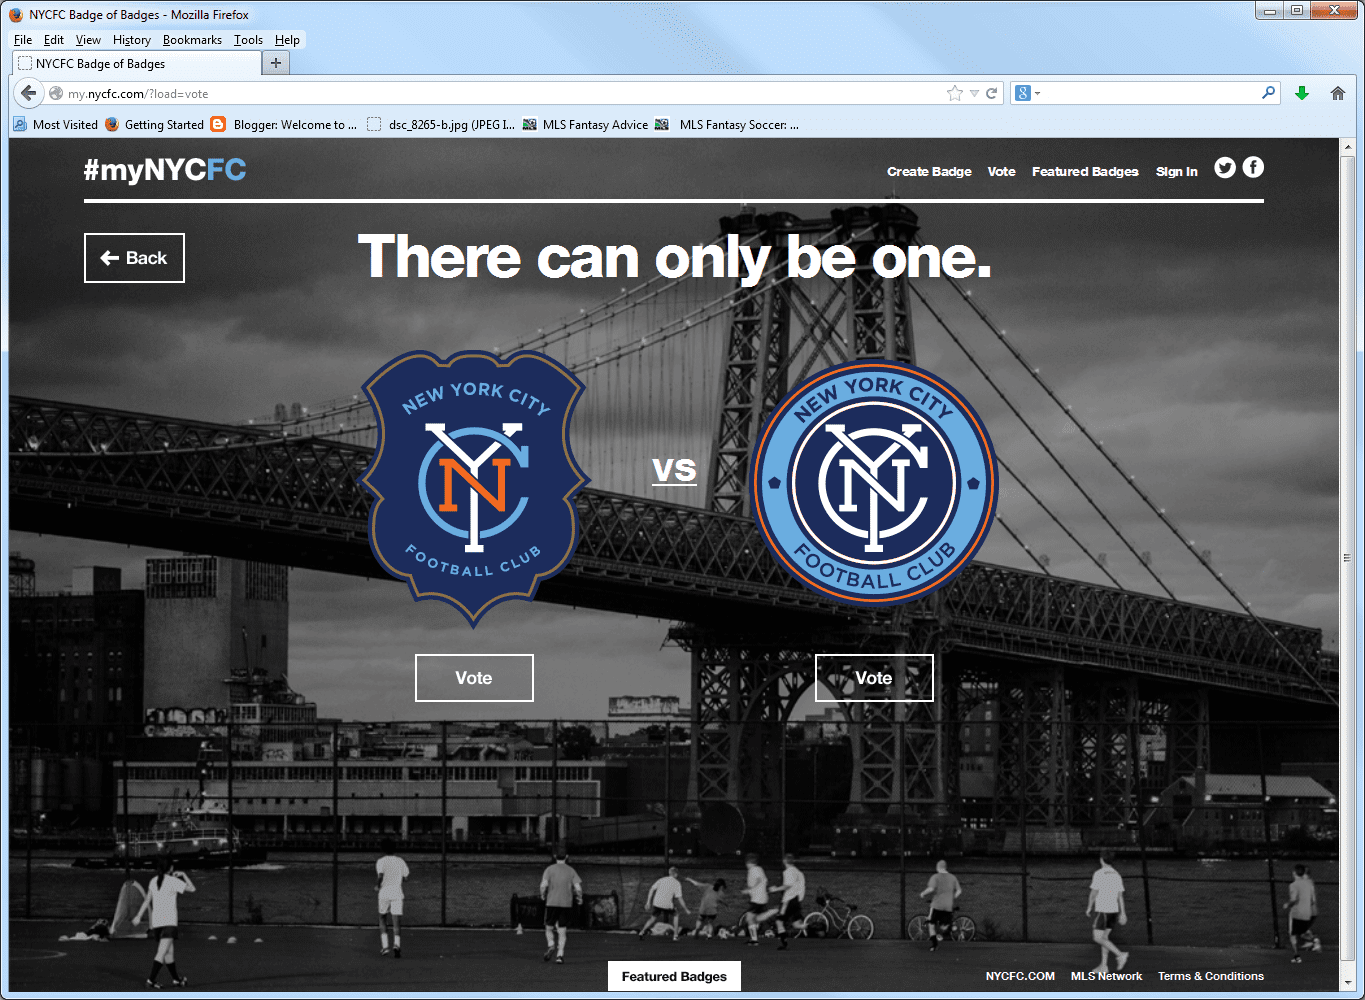 nycfc_badge_vote.png